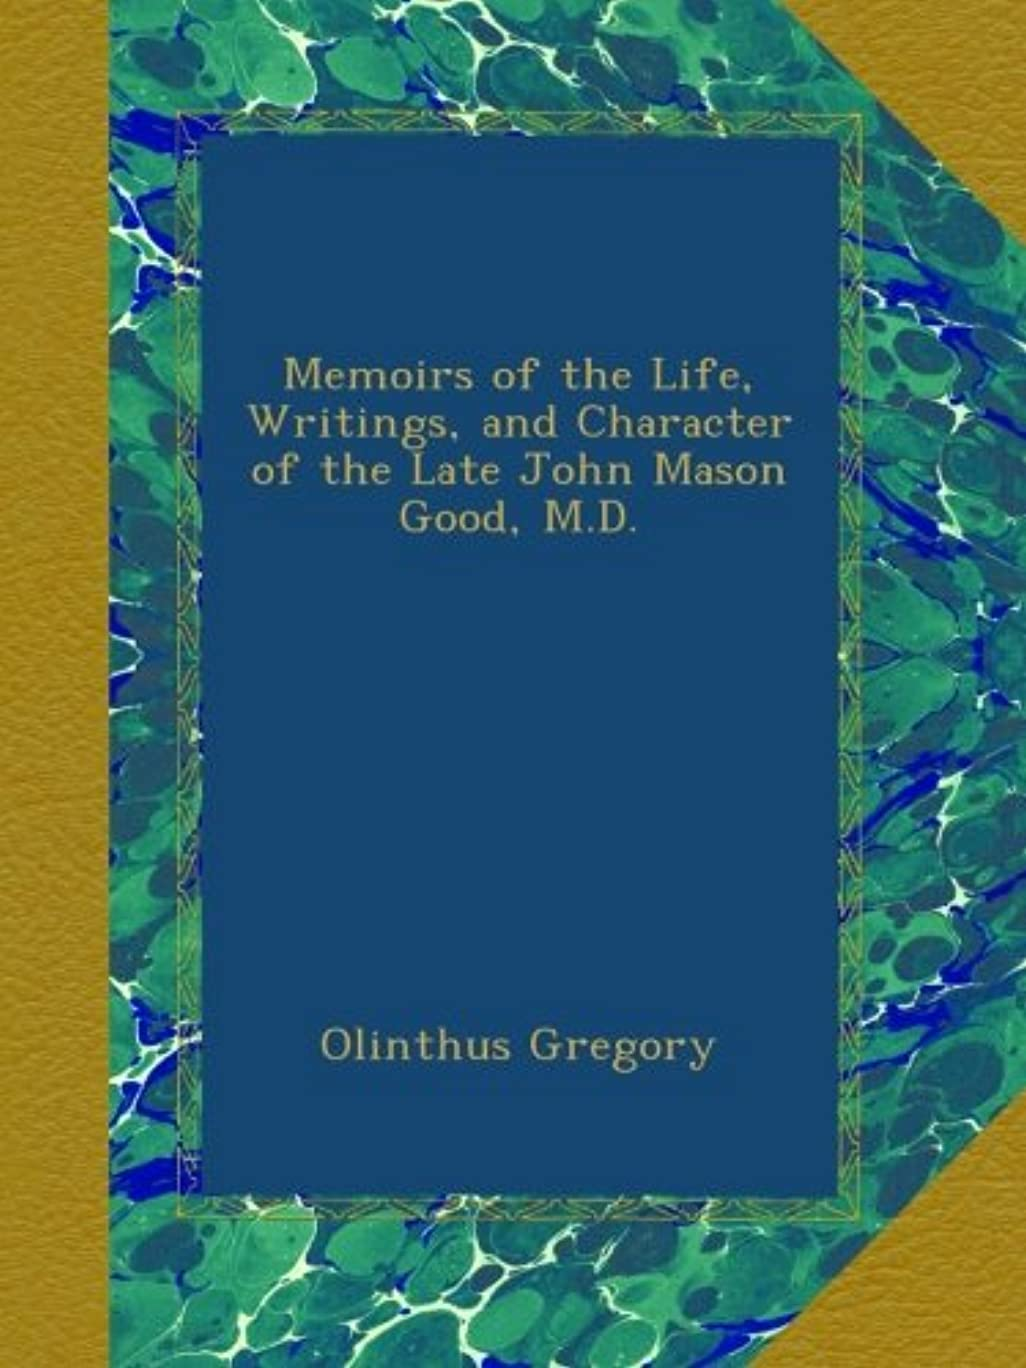 塗抹検査官釈義Memoirs of the Life, Writings, and Character of the Late John Mason Good, M.D.